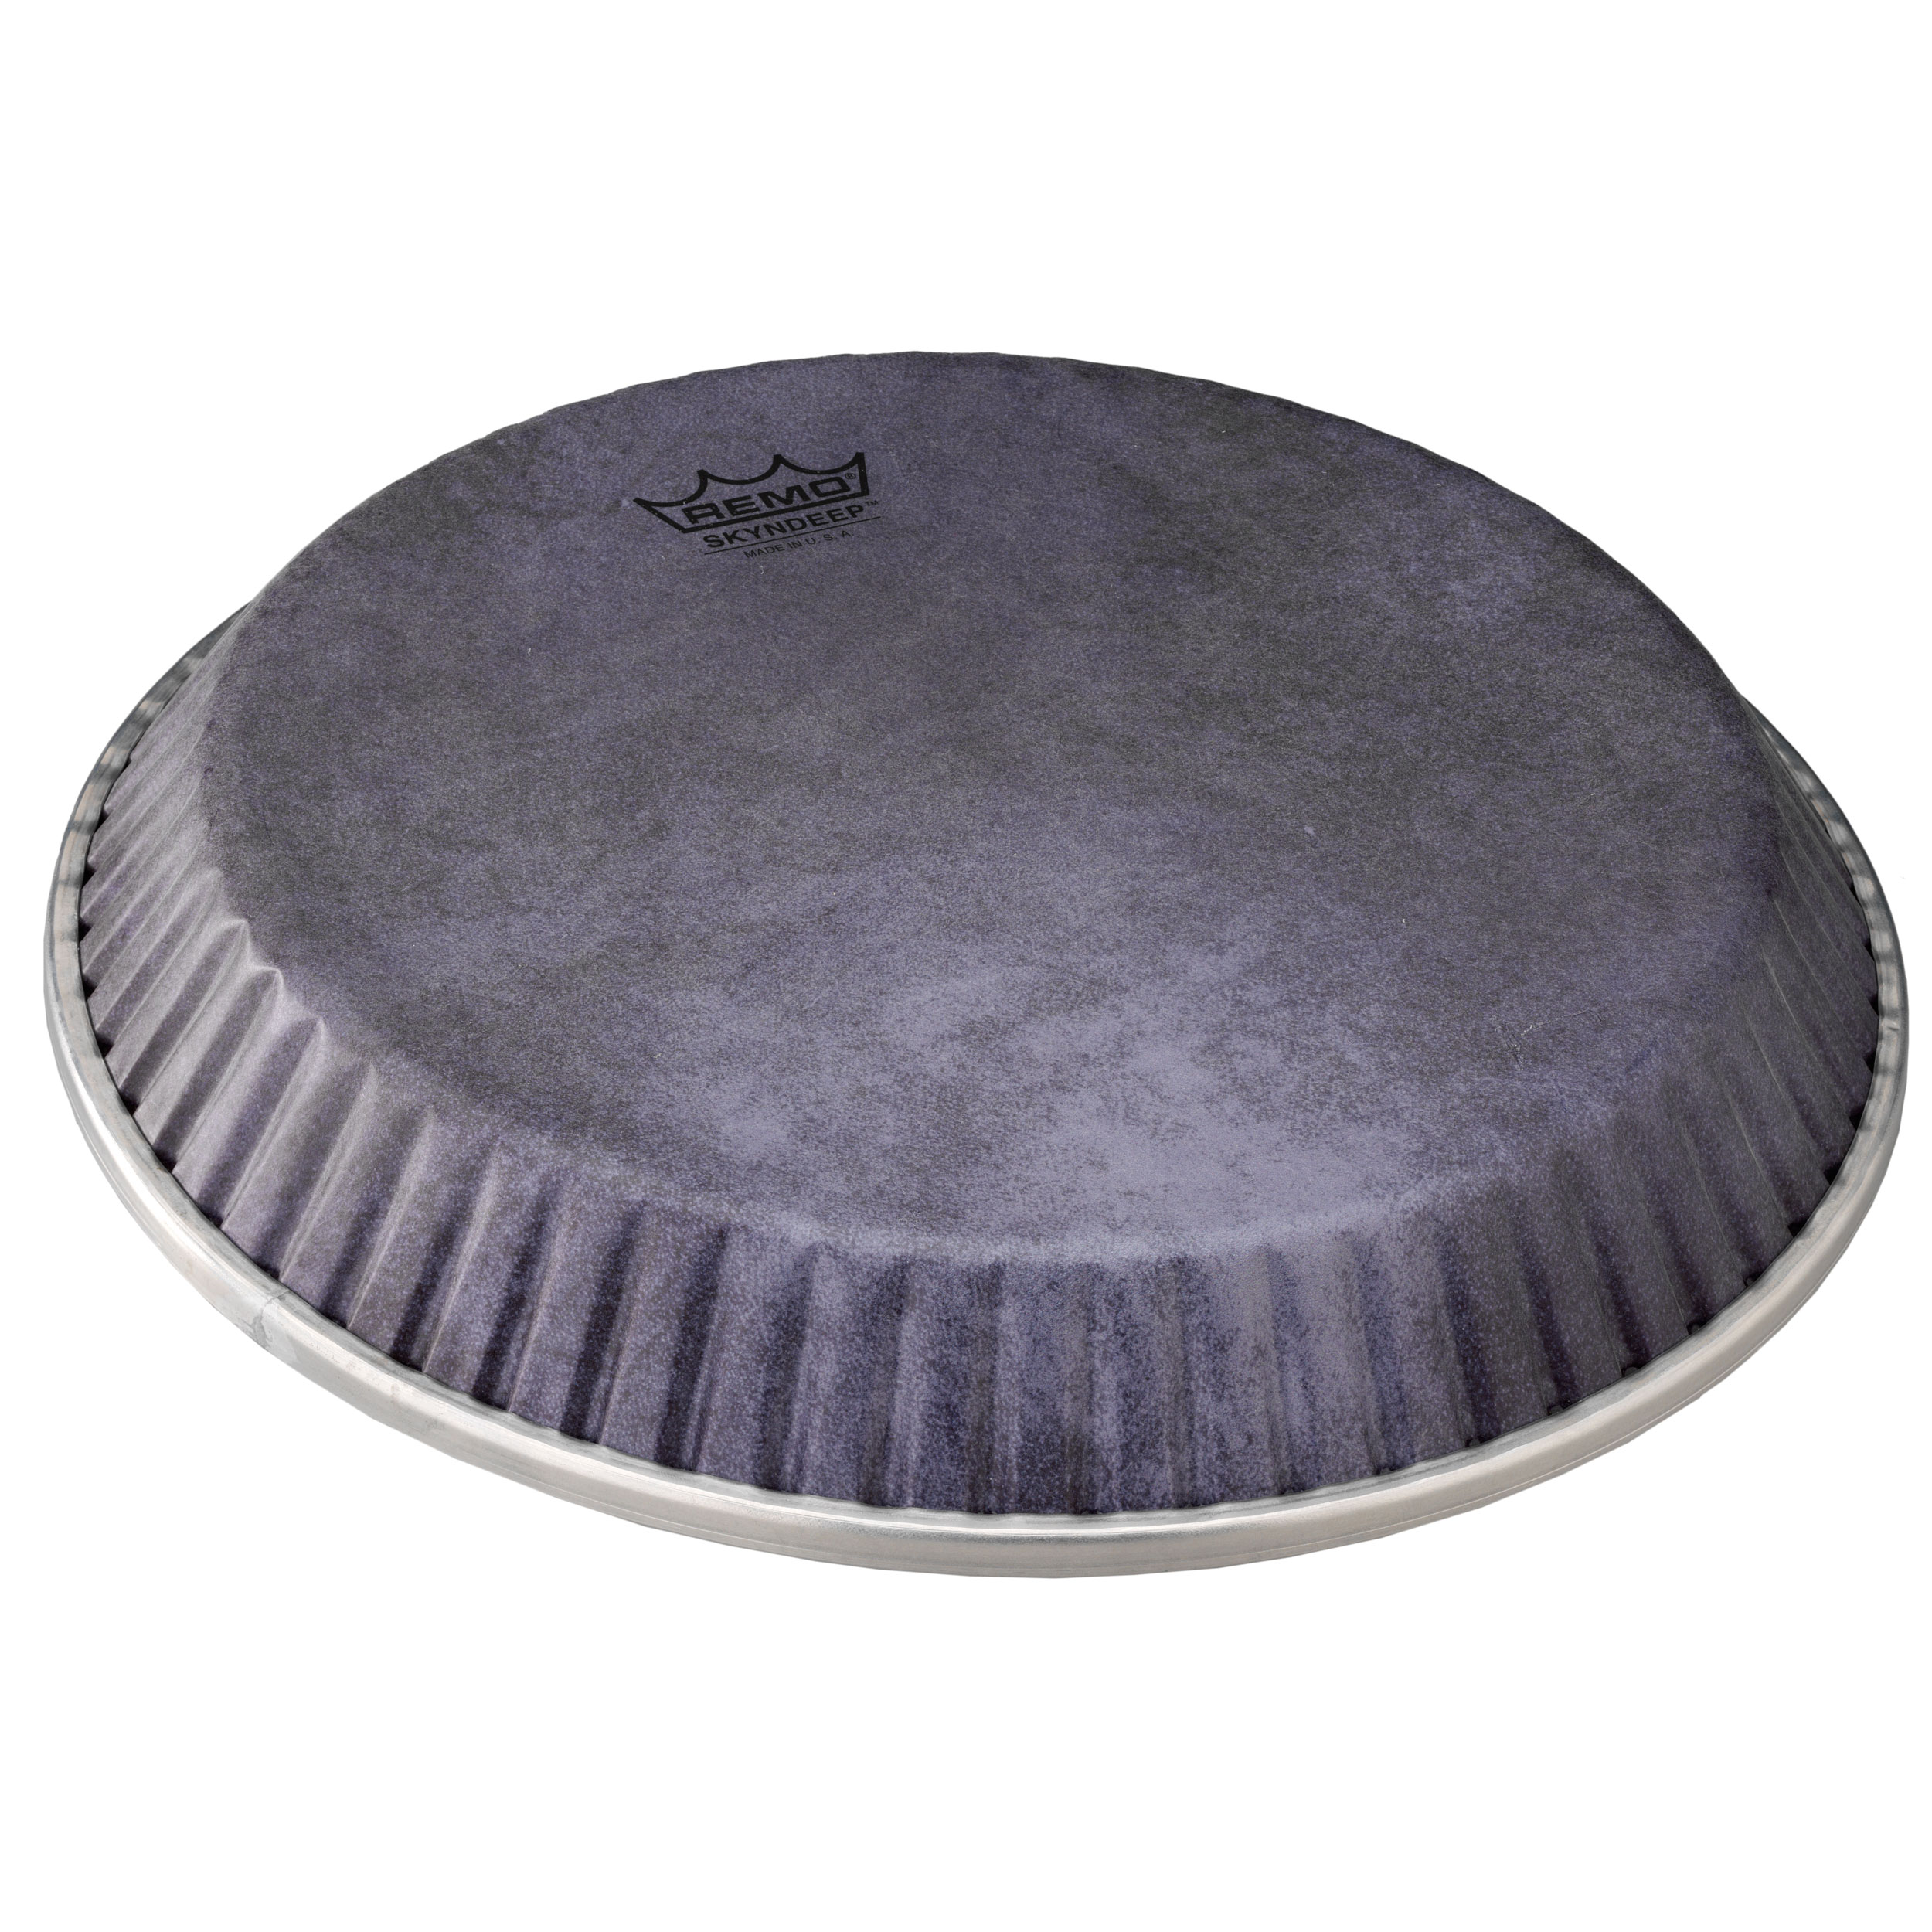 """Remo 12.5"""" Symmetry Skyndeep Conga Drum Head (D2 Collar) with Black Calfskin Graphic"""